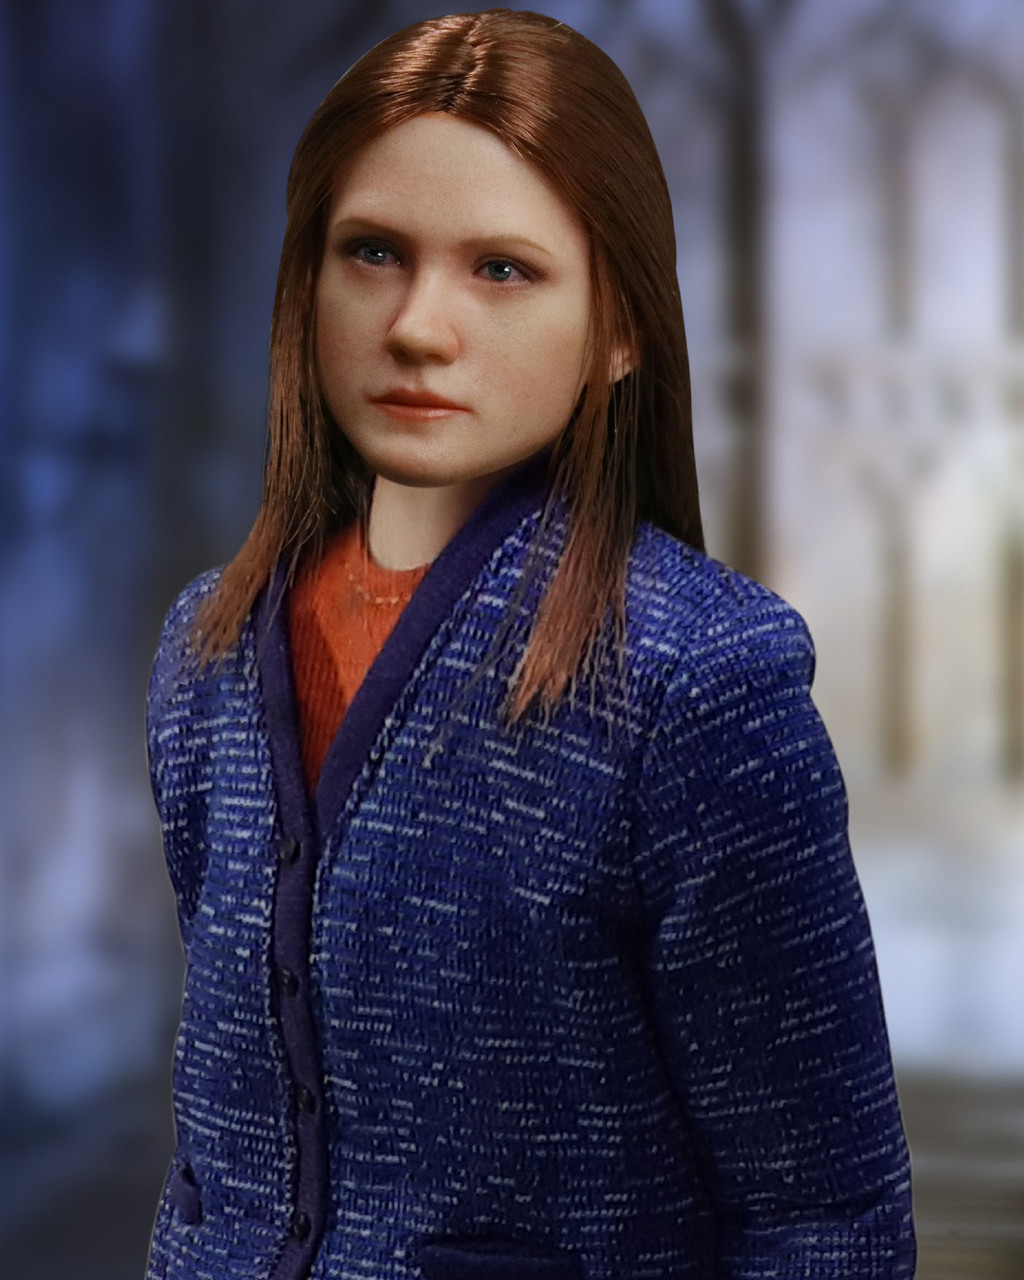 Star Ace Toys SA0063 Harry Potter 1//6 Scale Ginny Weasley Action Figure